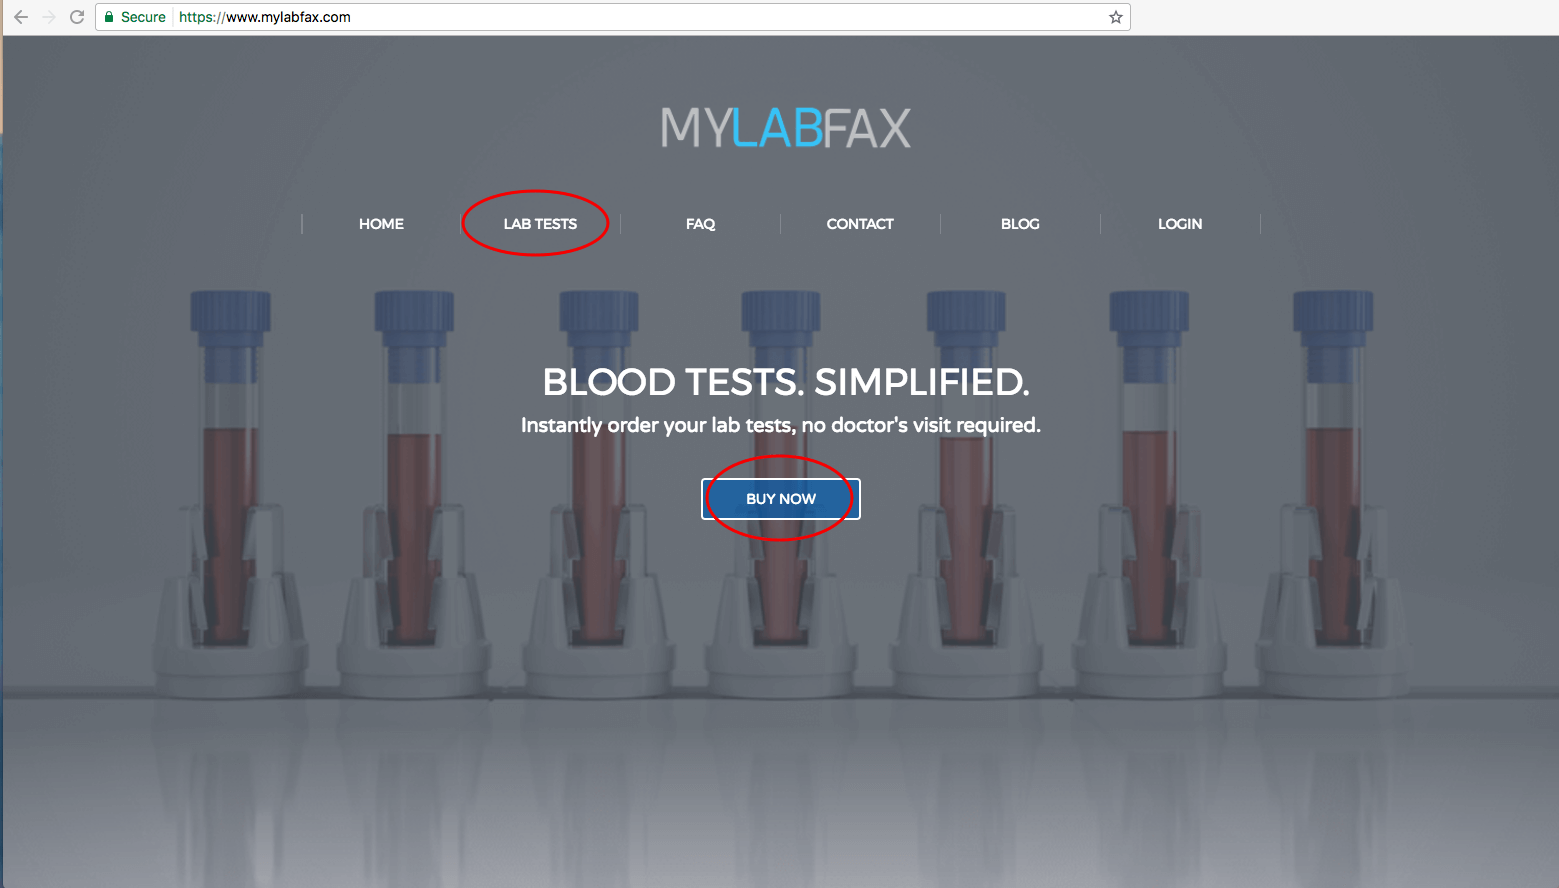 mylabfax's home page